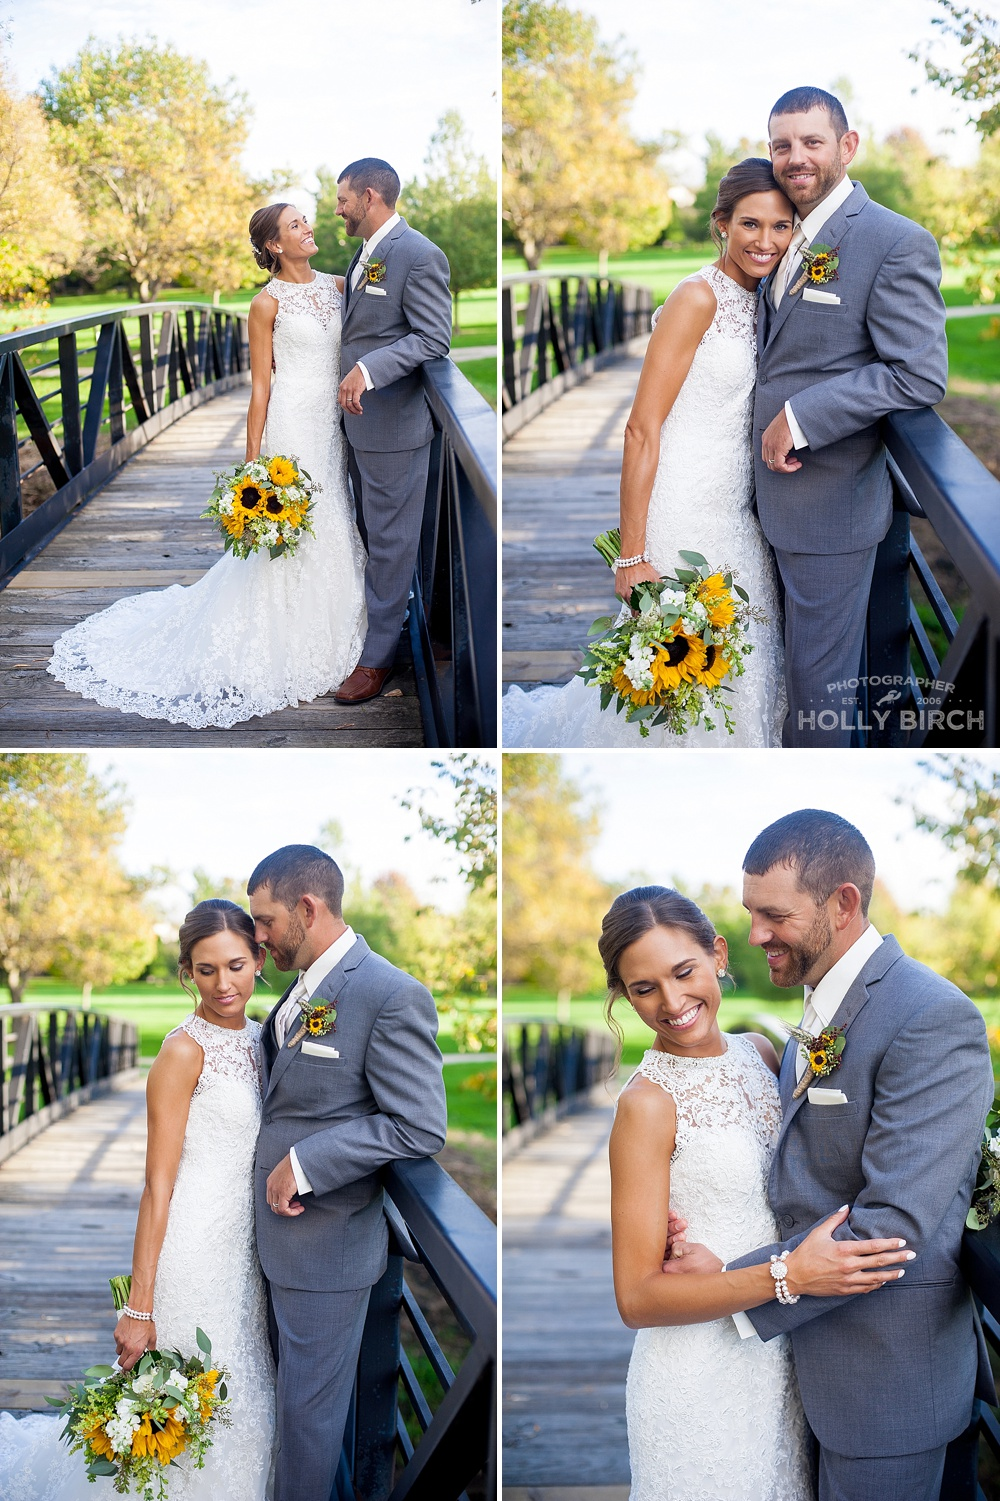 wedding photos at Robeson Park bridge